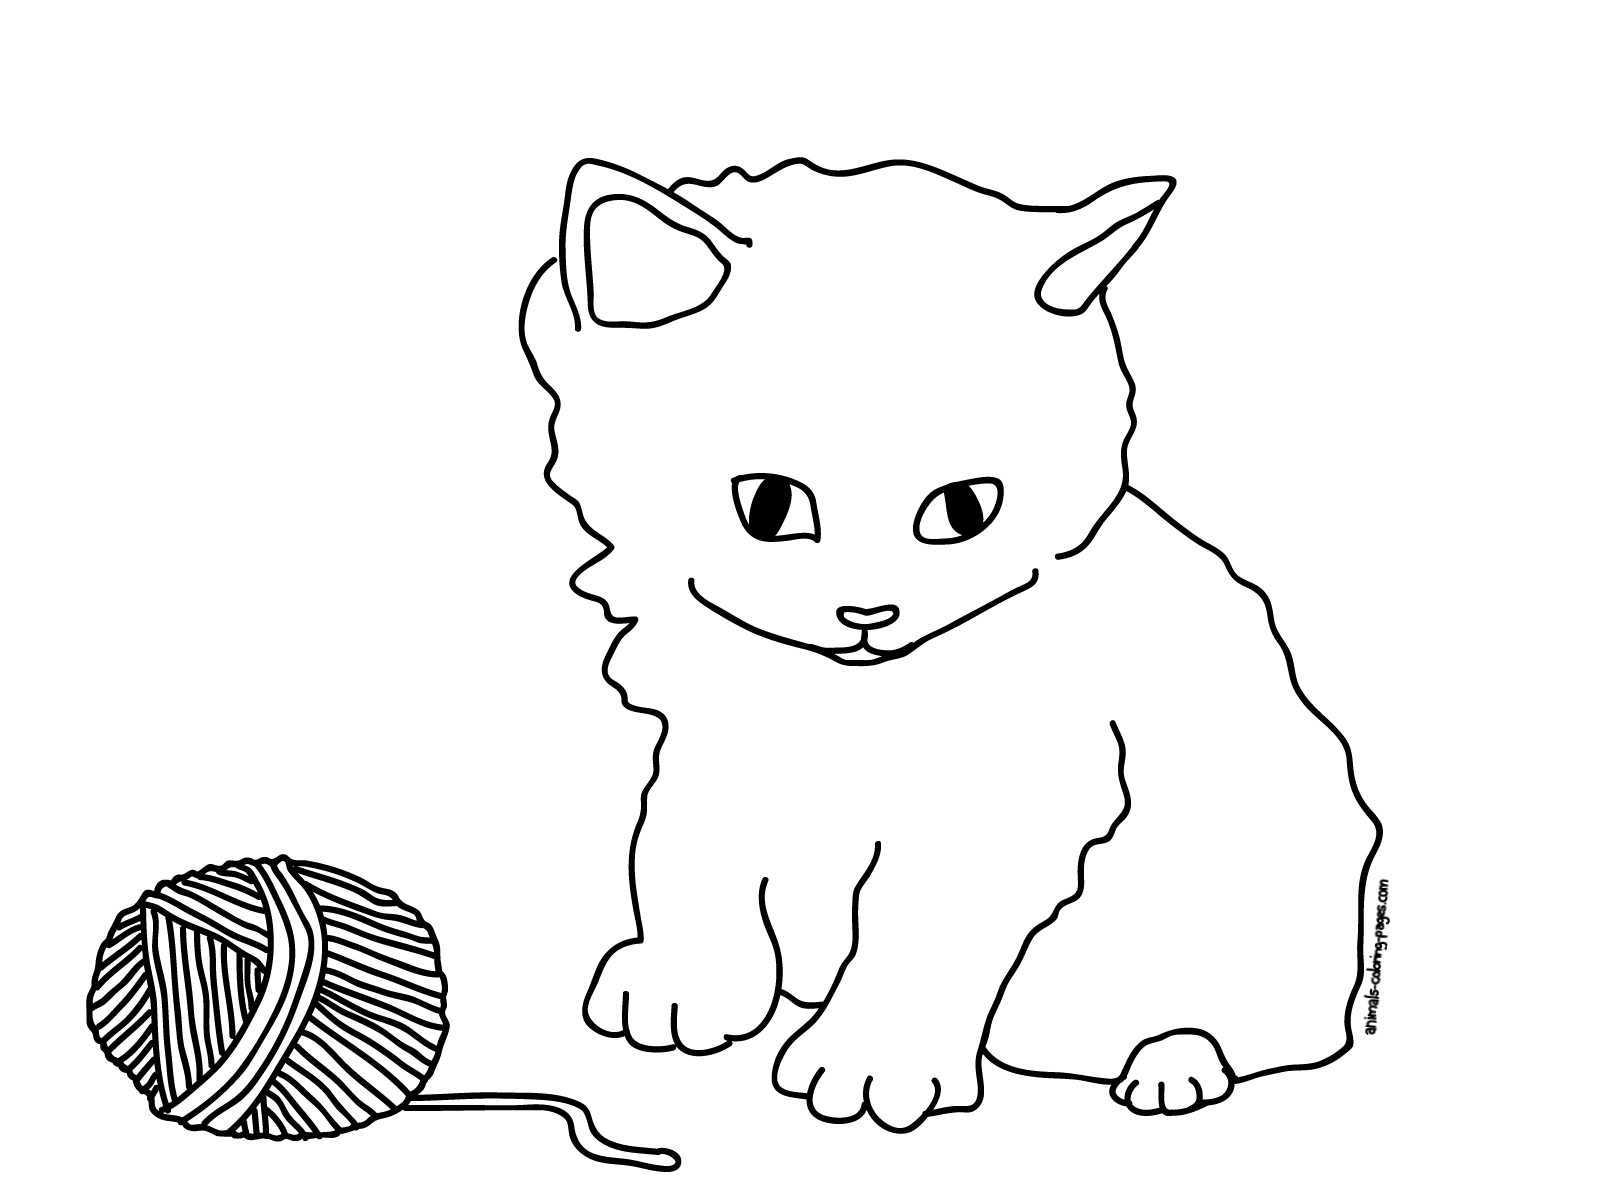 cats pictures to color kitty cat coloring pages coloring pages for kids cats color pictures to